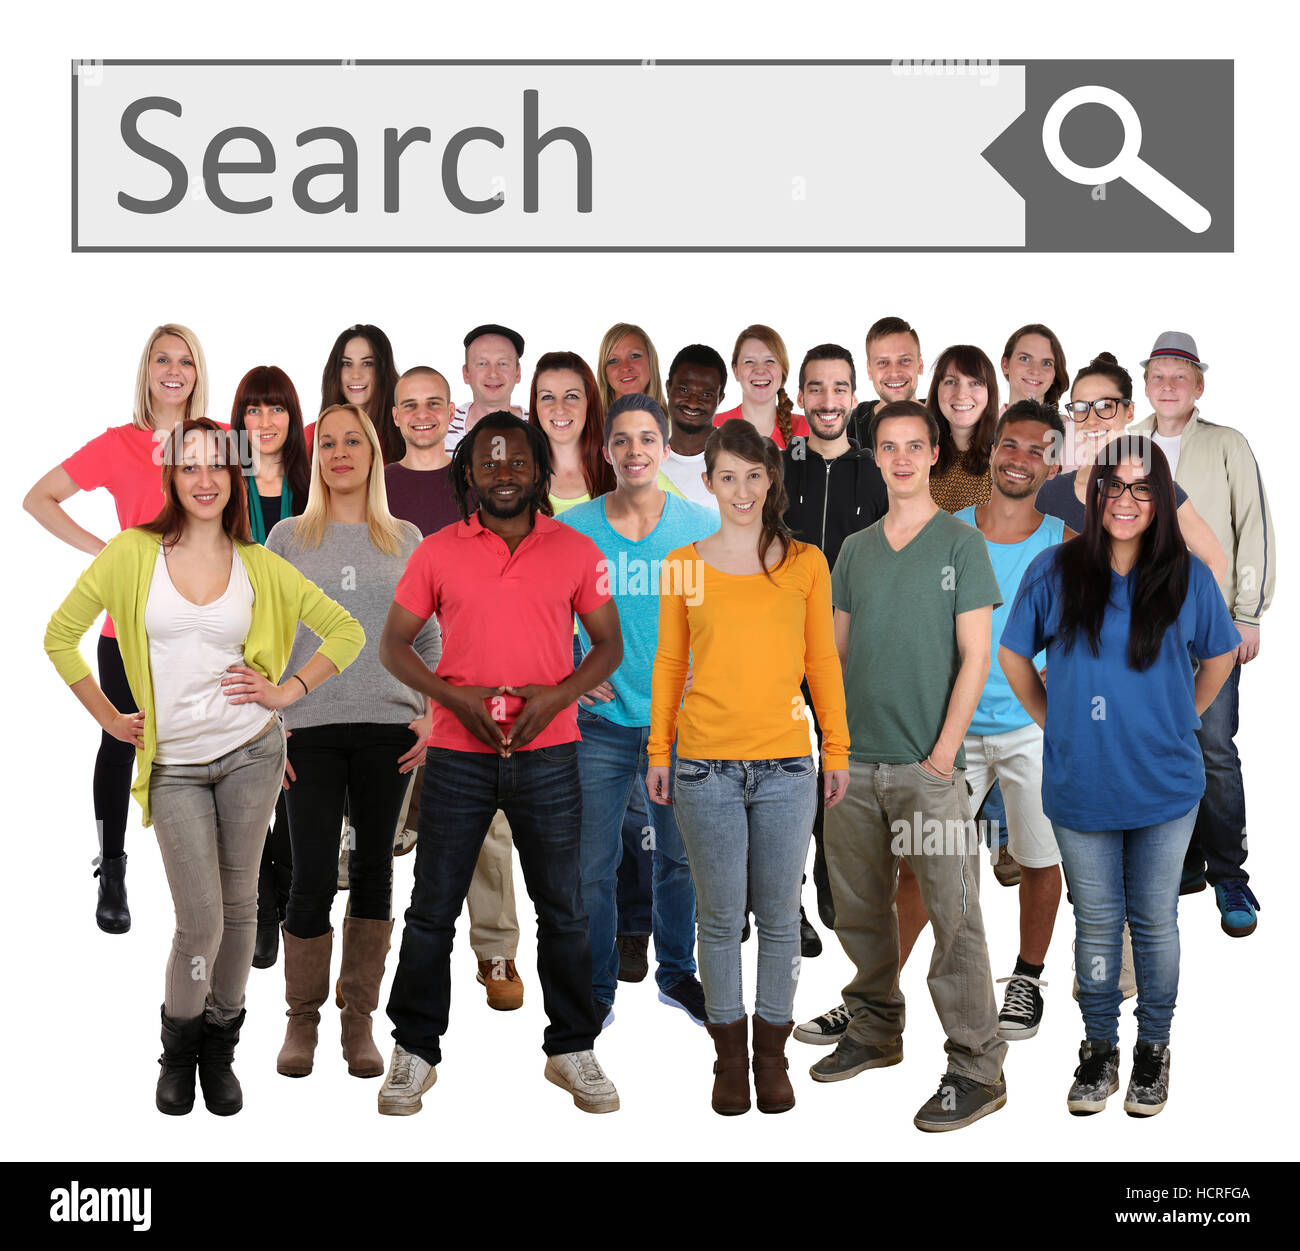 Group of young smiling people searching search engine internet isolated on a white background - Stock Image